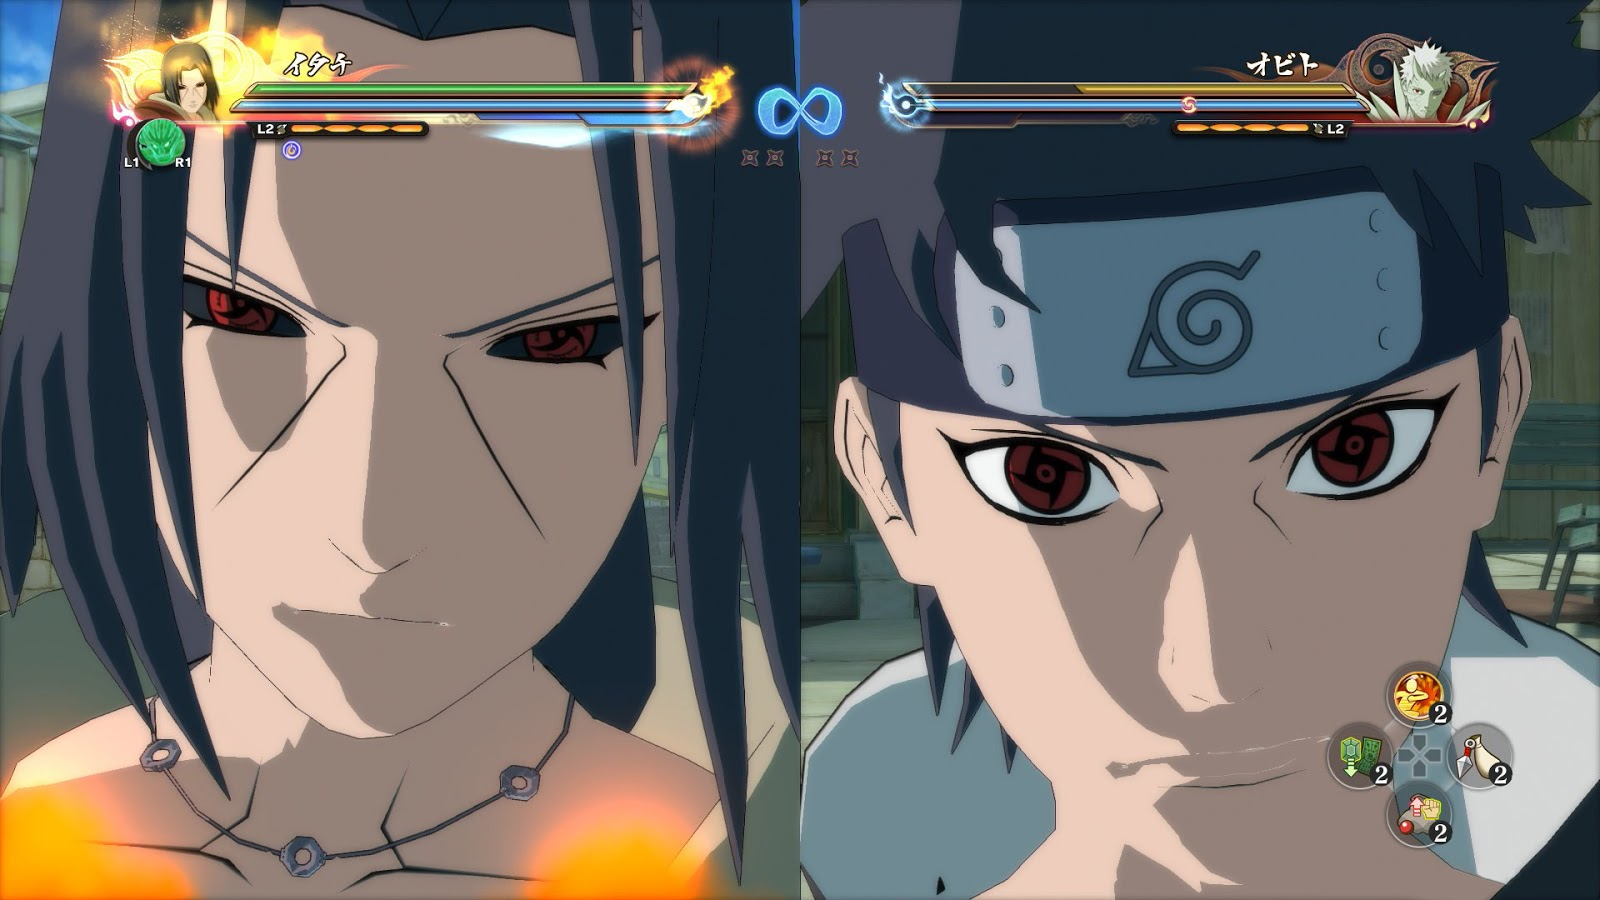 Naruto Shippuden Ultimate Ninja Storm 4 Is The Final Game In The Storm Series It Will Feature The Most Realistic Graphics Ever Seen In The Storm Series